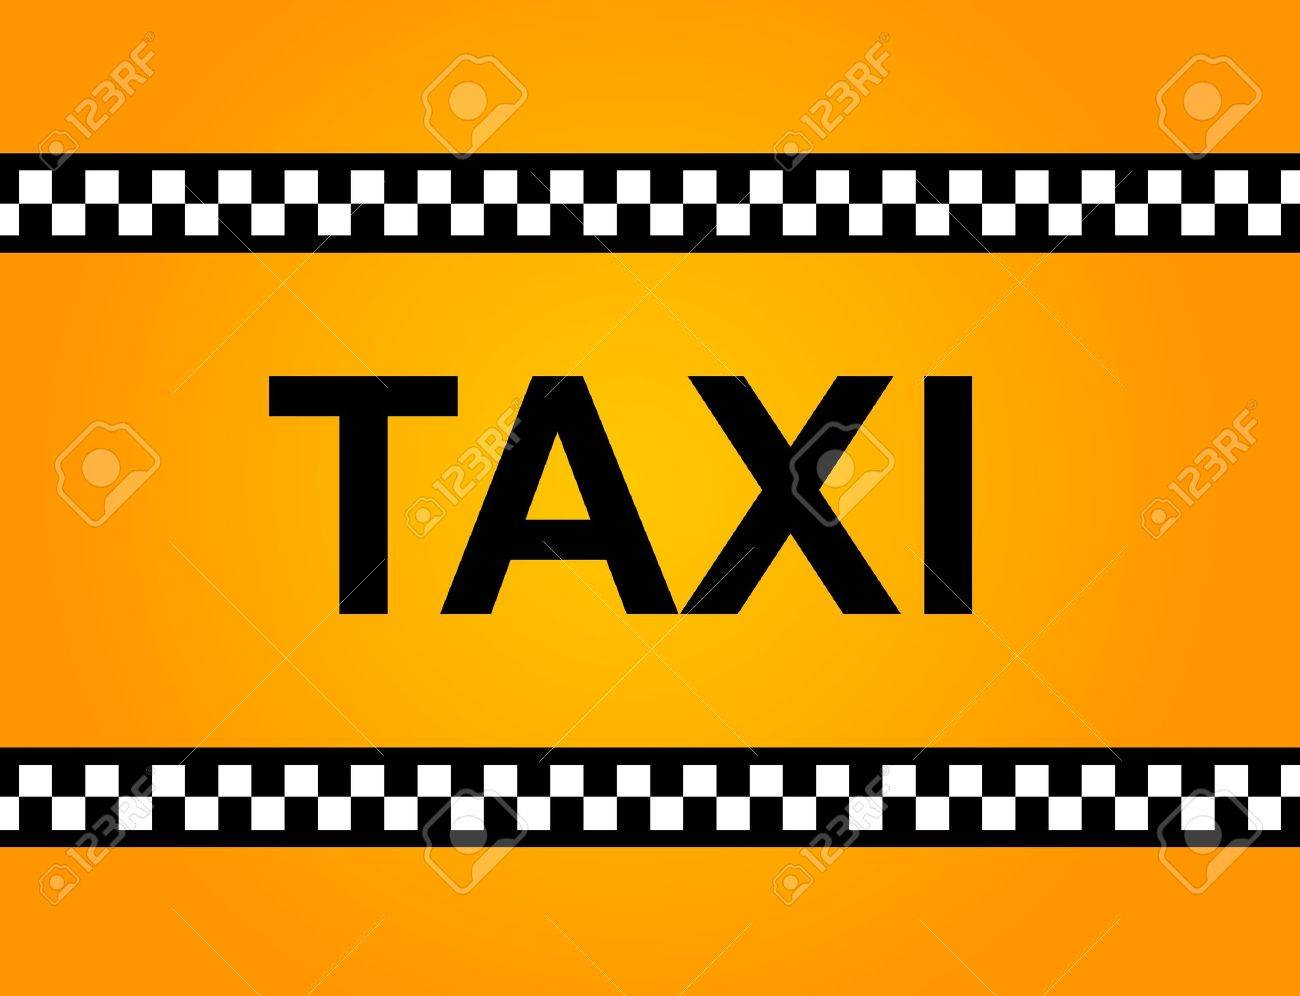 Background of a yellow taxi cab with text Stock Photo - 10493937